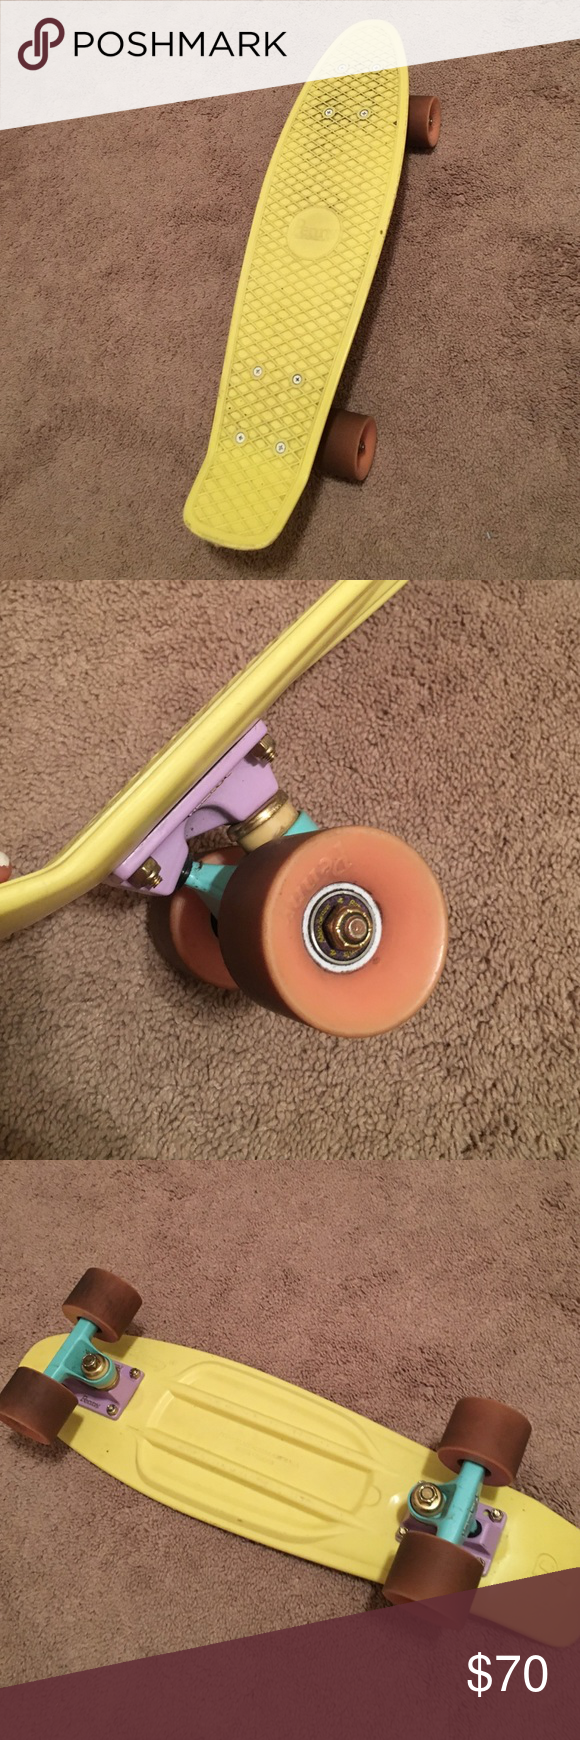 Pastel Penny Board Original 22 Yellow Board Lavender Blue And Yellow Accents Pink Wheels 22 Not Sold On Penny Skateboard Pastel Penny Board Pink Wheels